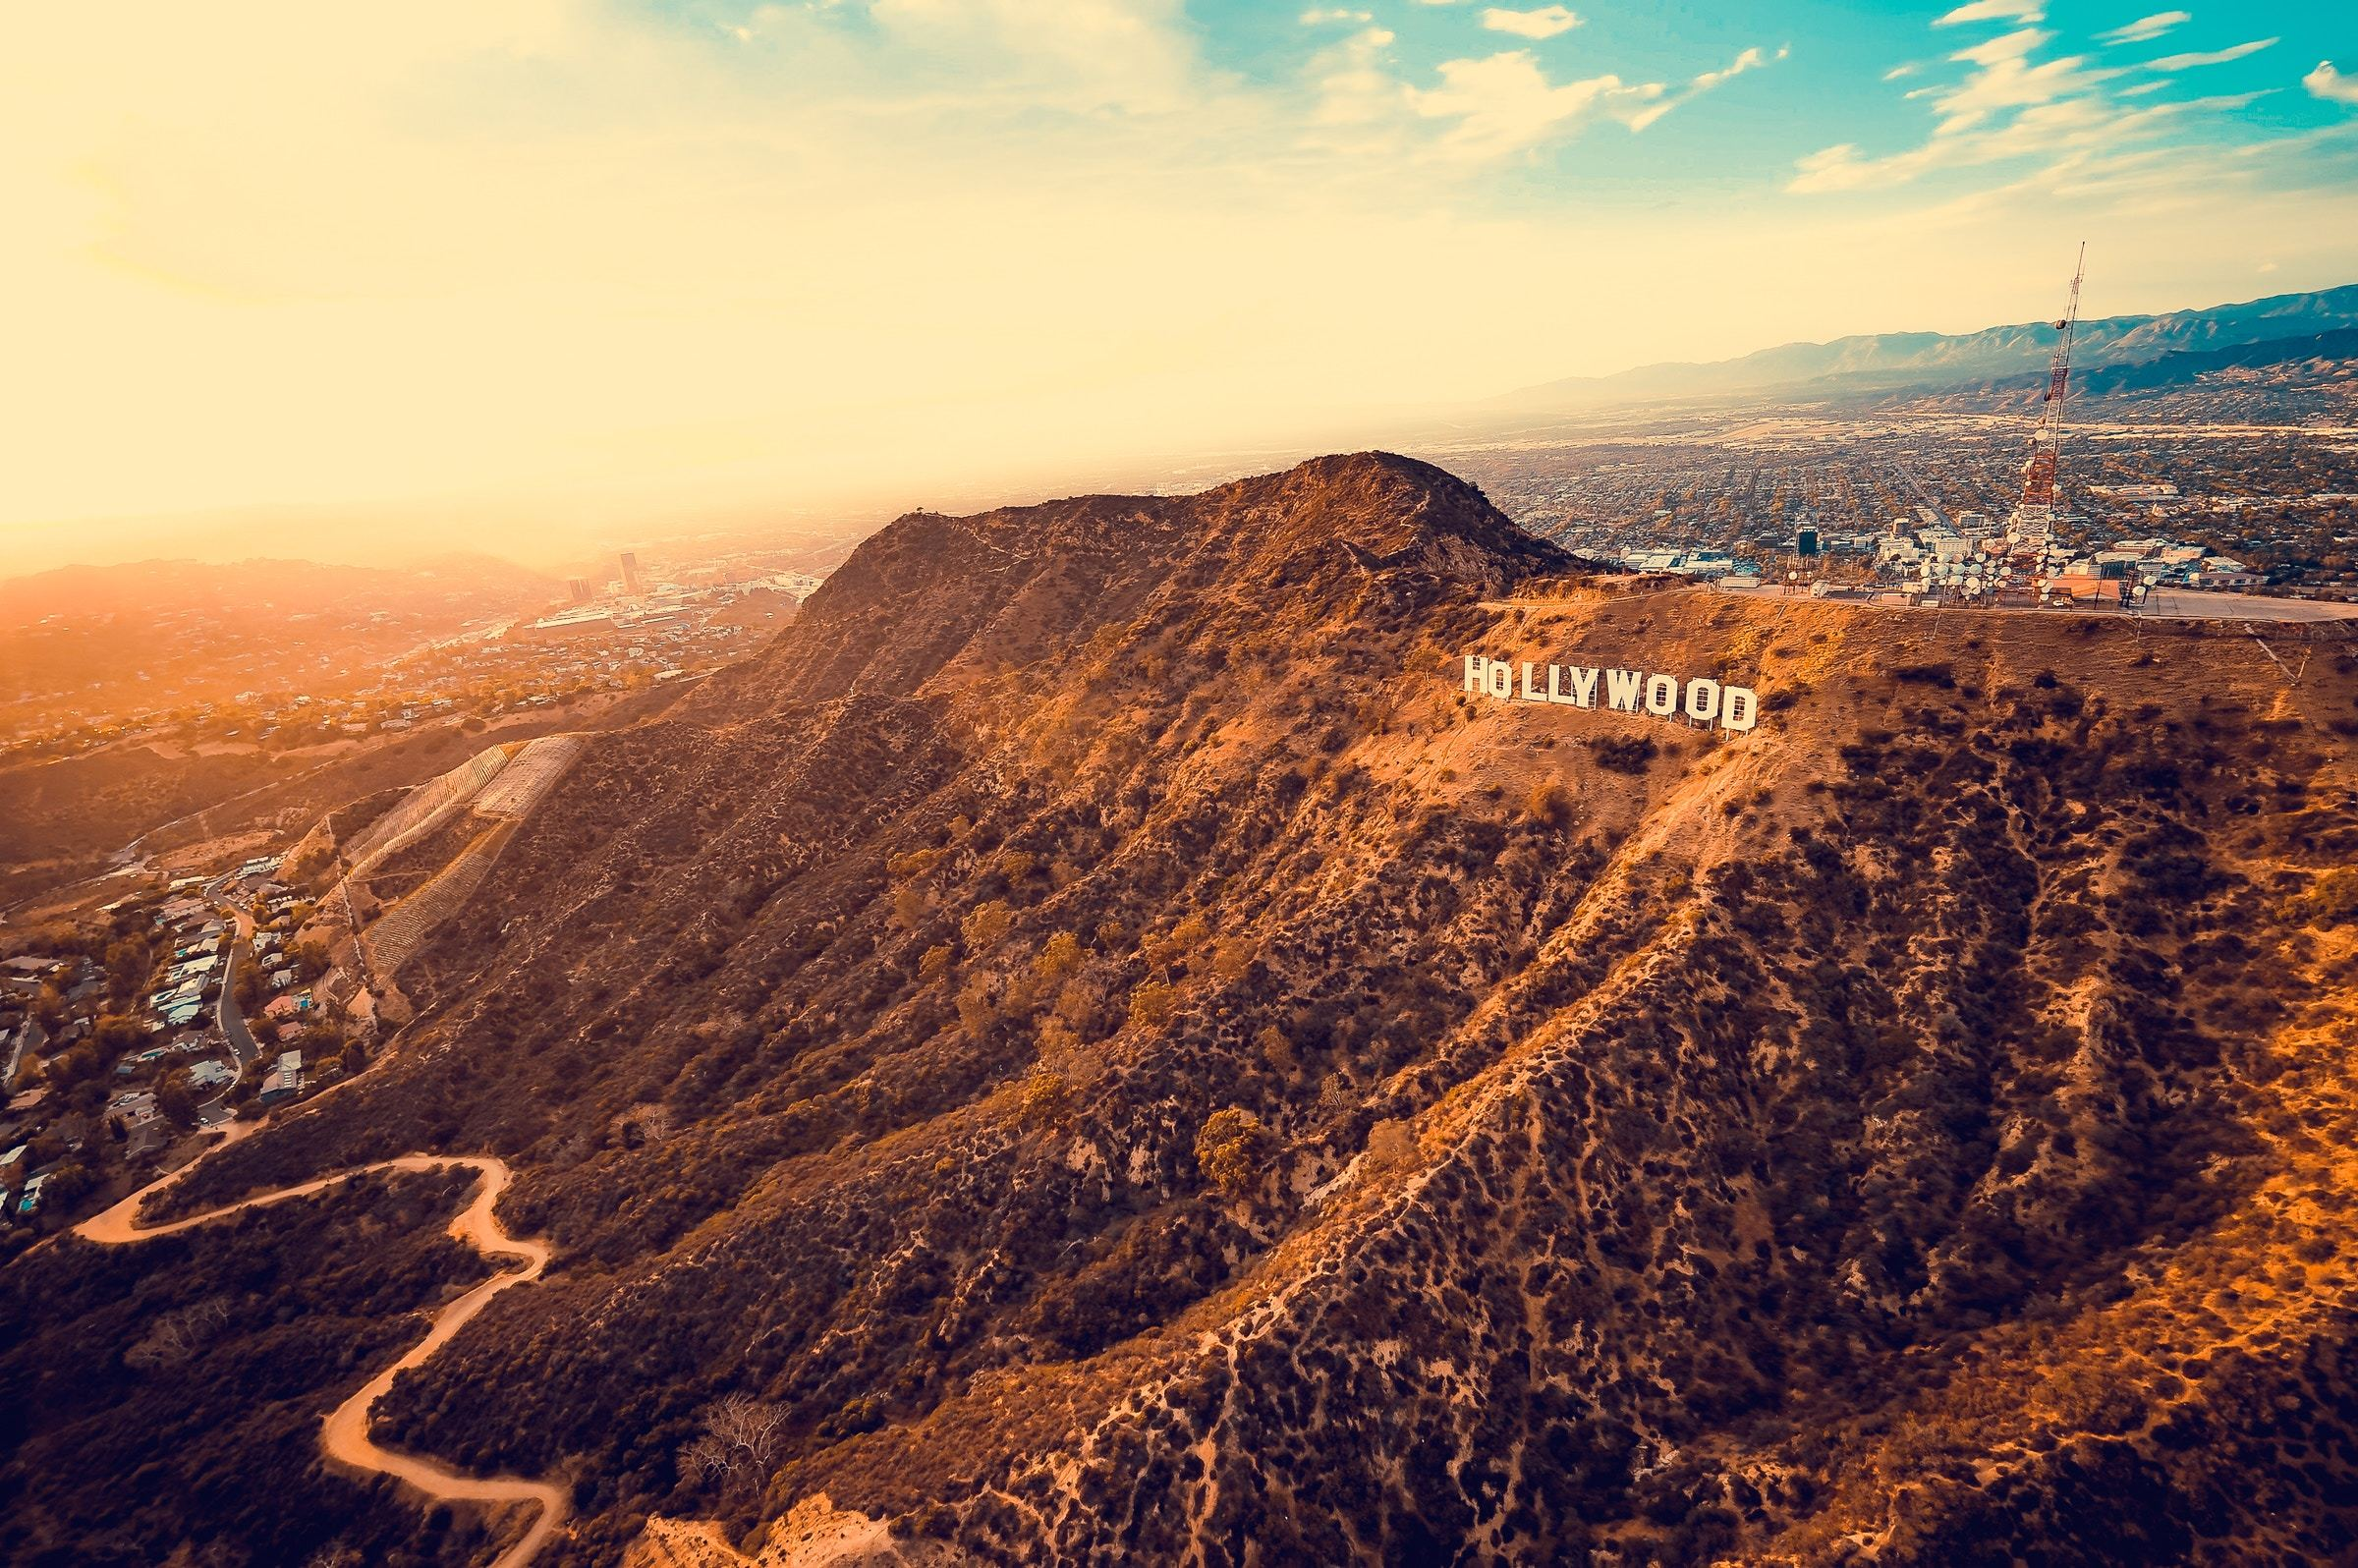 Los Angeles_Hollywood_Vista